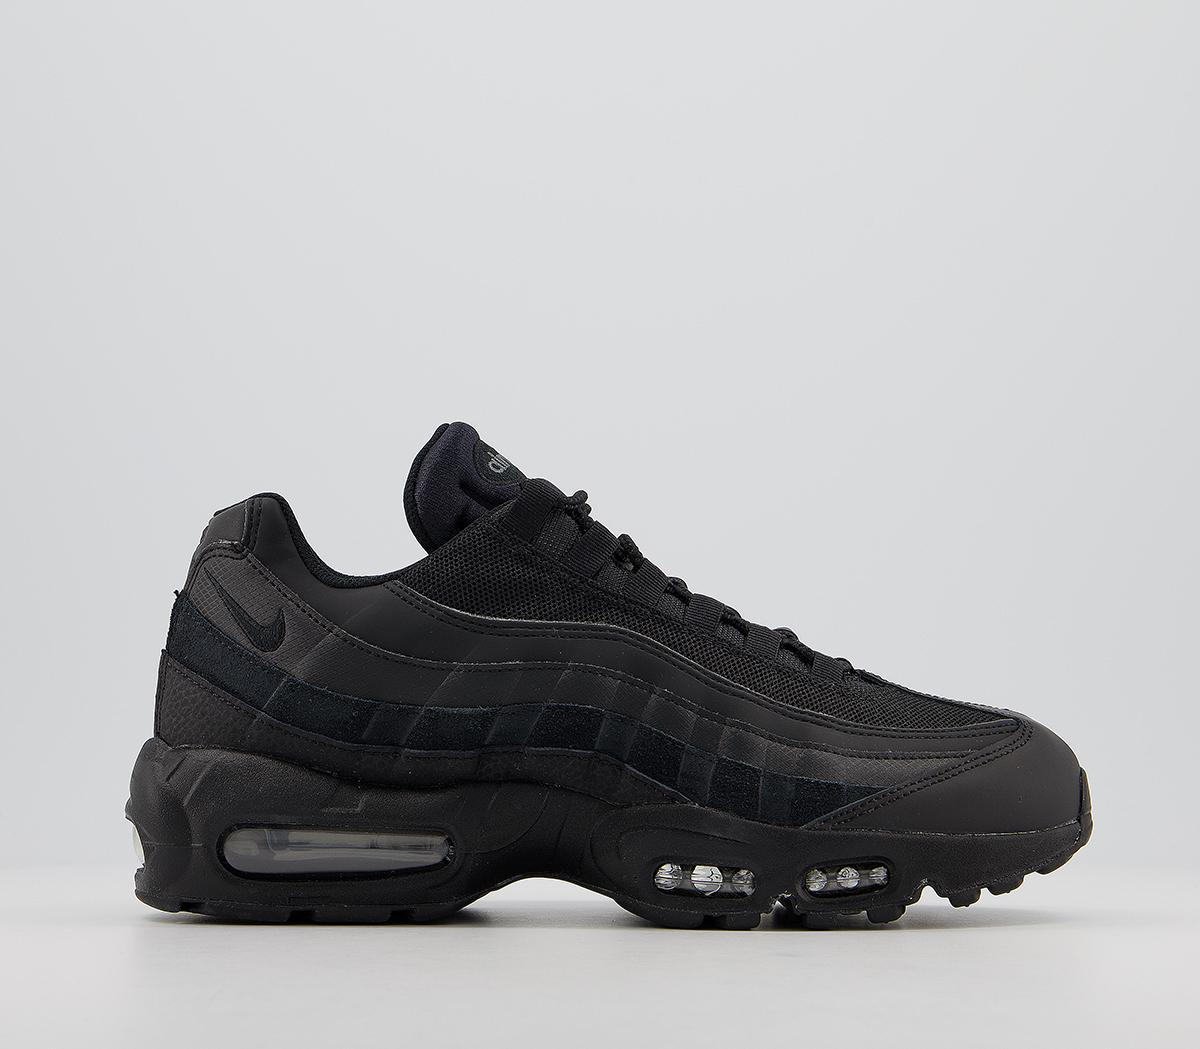 Bungalow desempleo Dedicar  Nike Air Max 95 Trainers Black Black Anthracite - His trainers